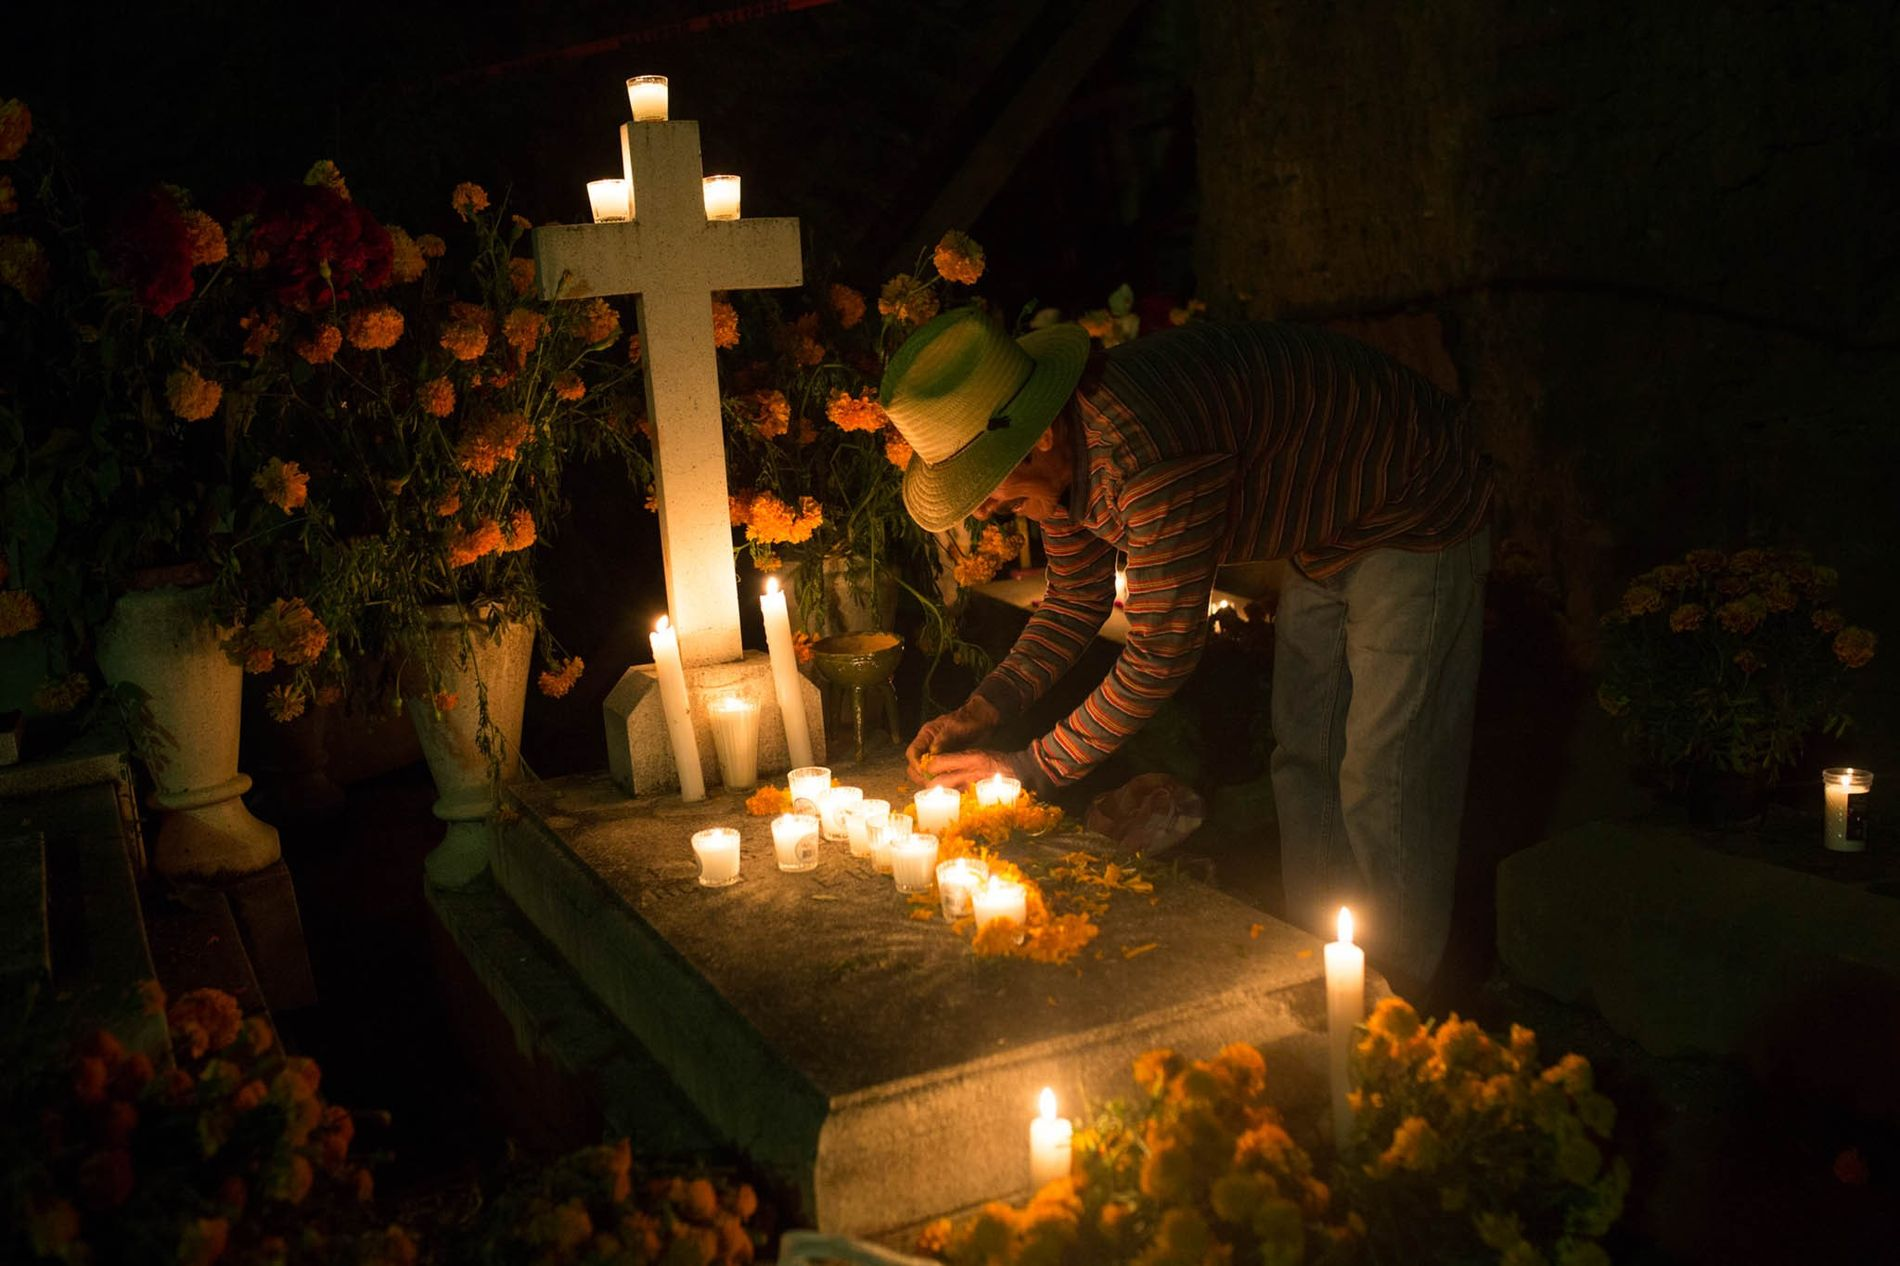 Catarano Cardova decorates his family grave with candles and flowers in Panteon Viejo Xoxocotlán.